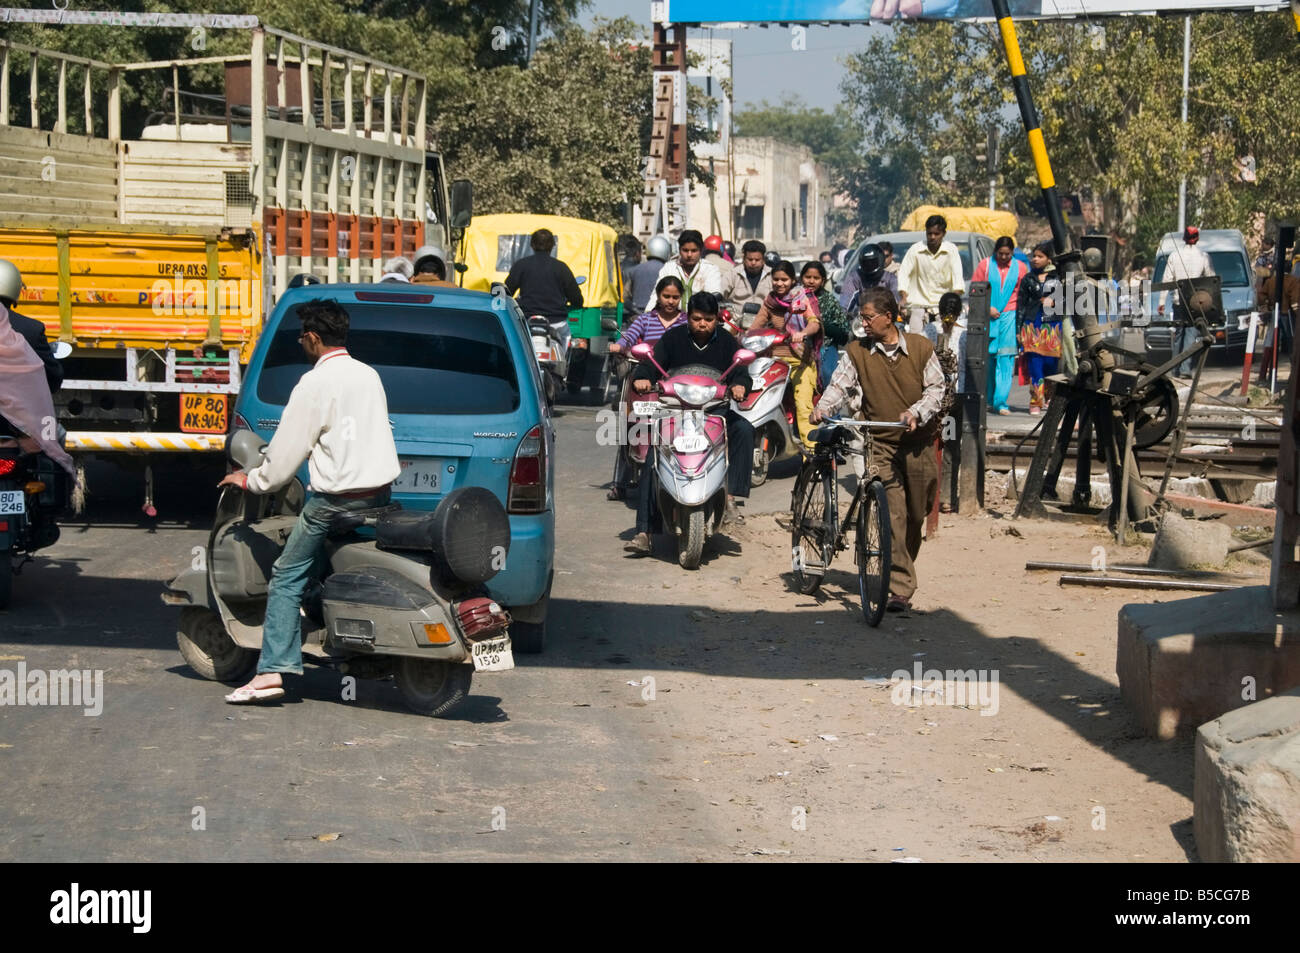 Typical traffic chaos in India - Stock Image